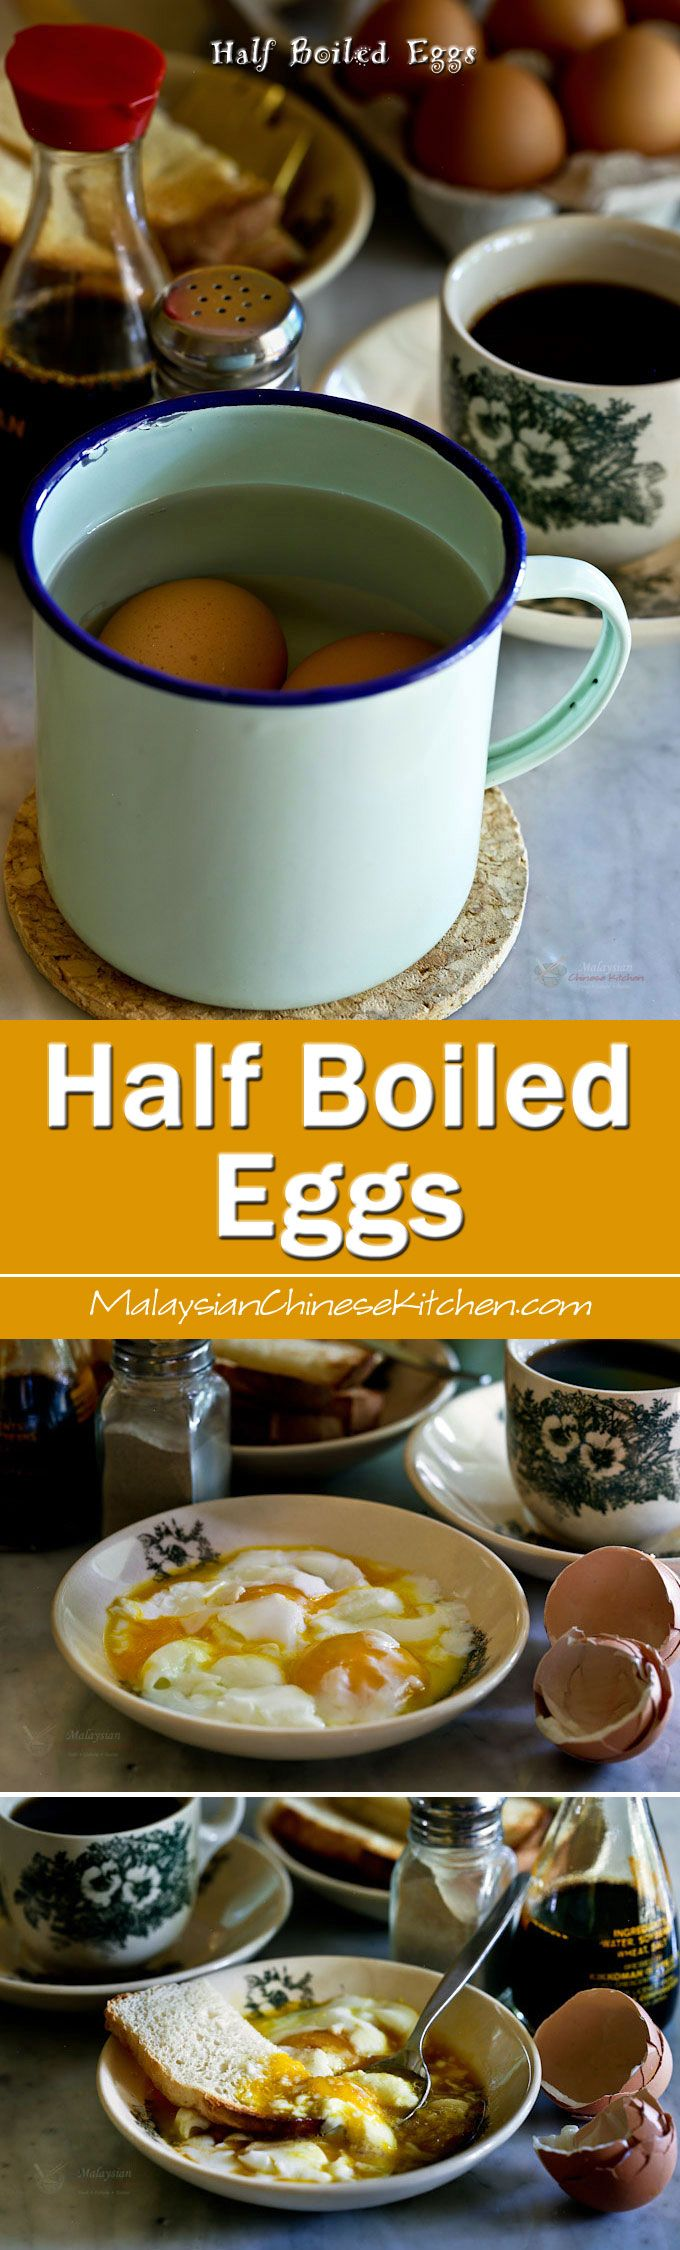 Half Boiled Eggs and toast are a favorite Malaysian breakfast. Learn how to cook them to a soft, creamy, and delicious perfection in a hot water…